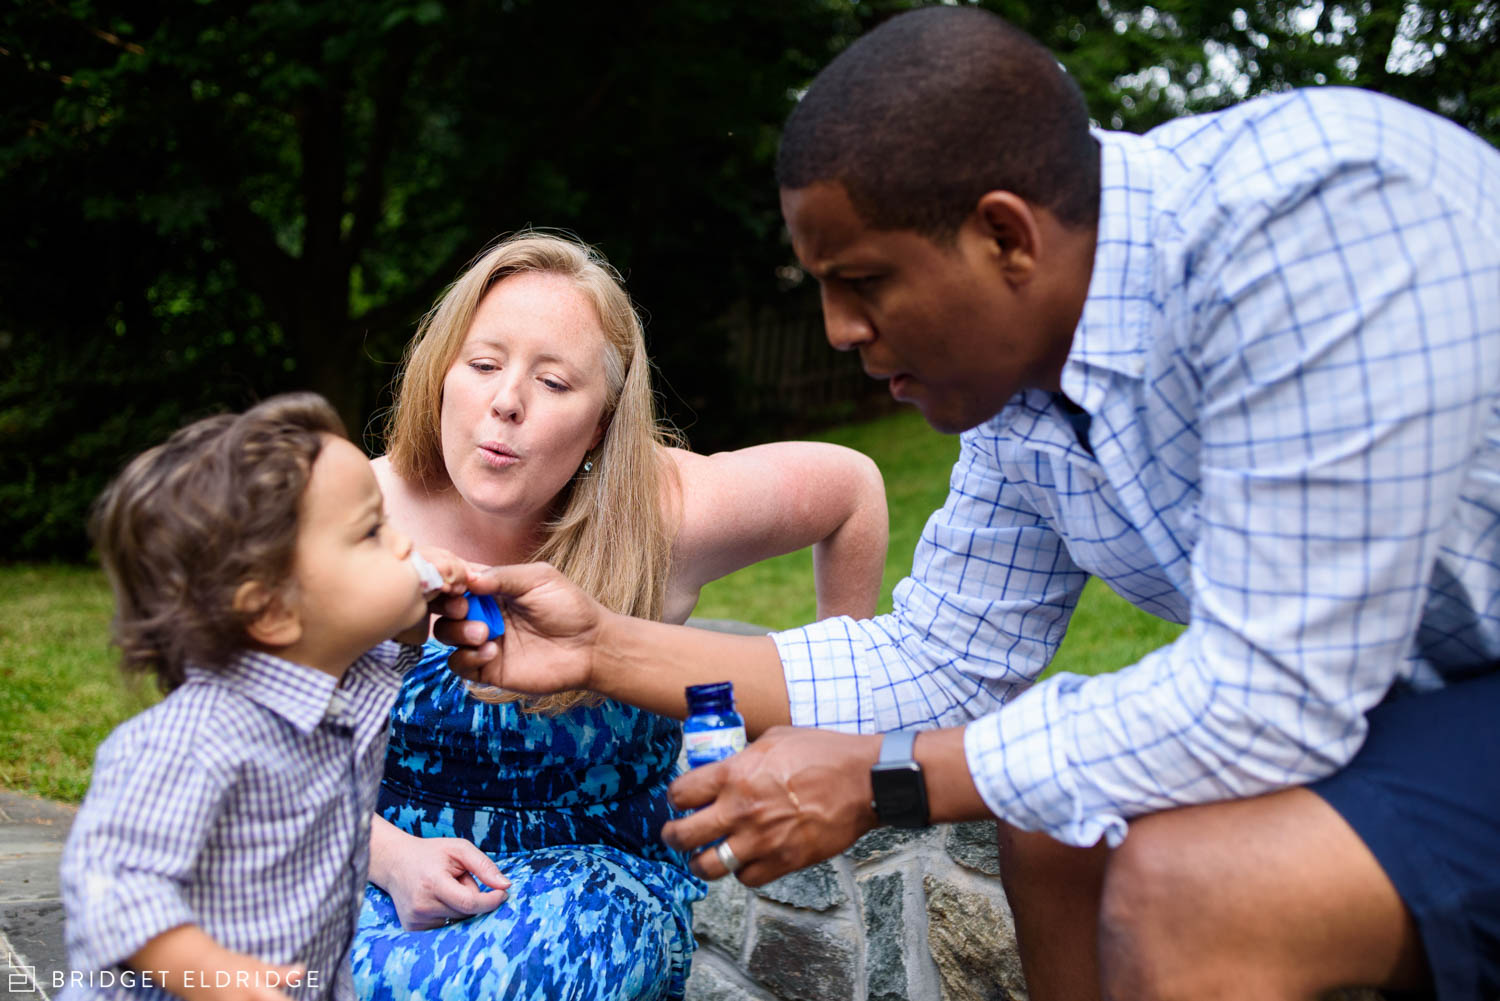 bethesda, md family blows bubbles together in their backyard